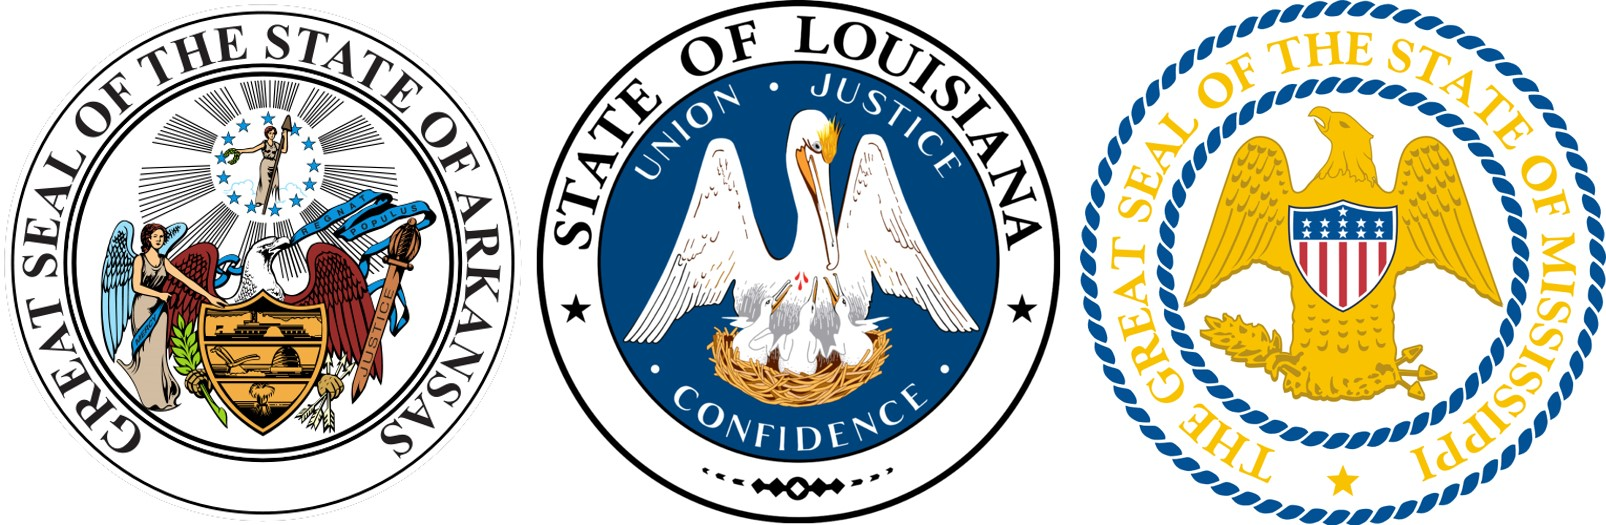 State seals for Arkansas, Louisiana, and Mississippi